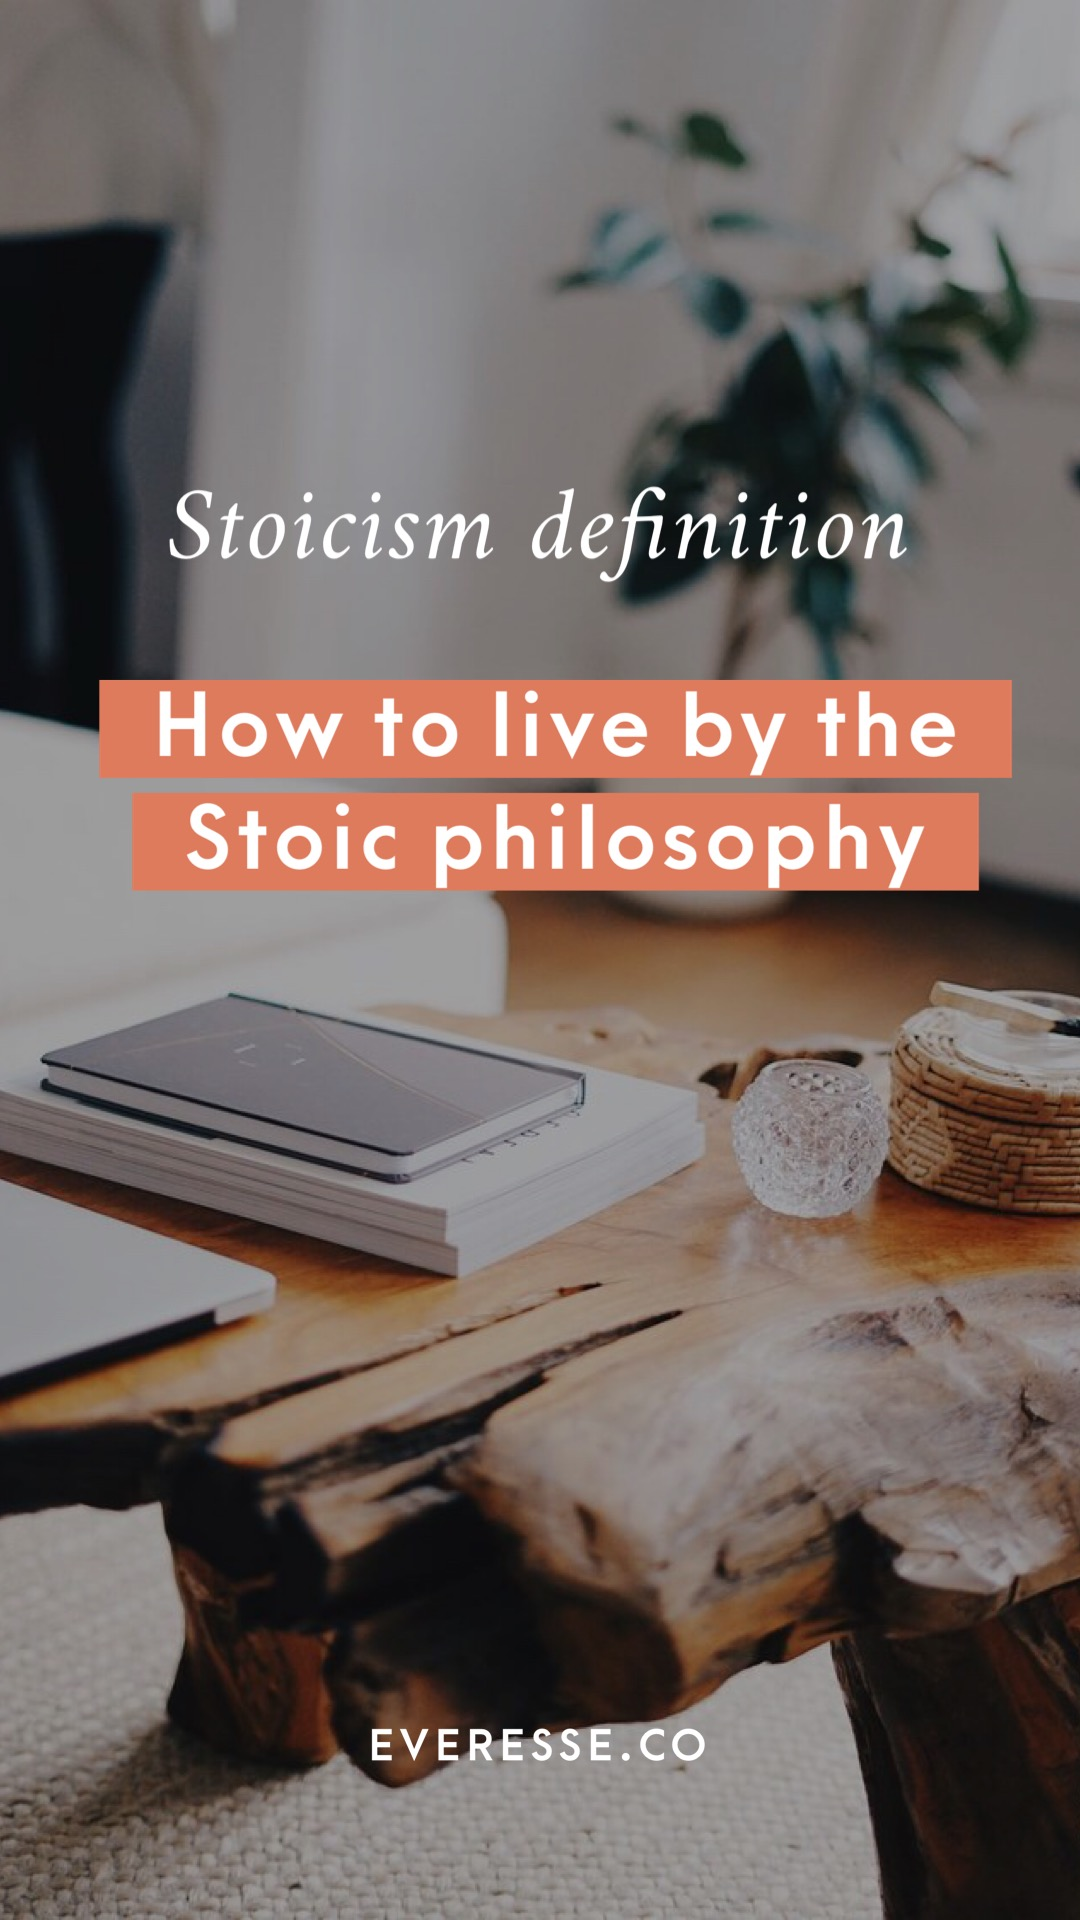 Stoicism definition: how to live by the Stoic philosophy